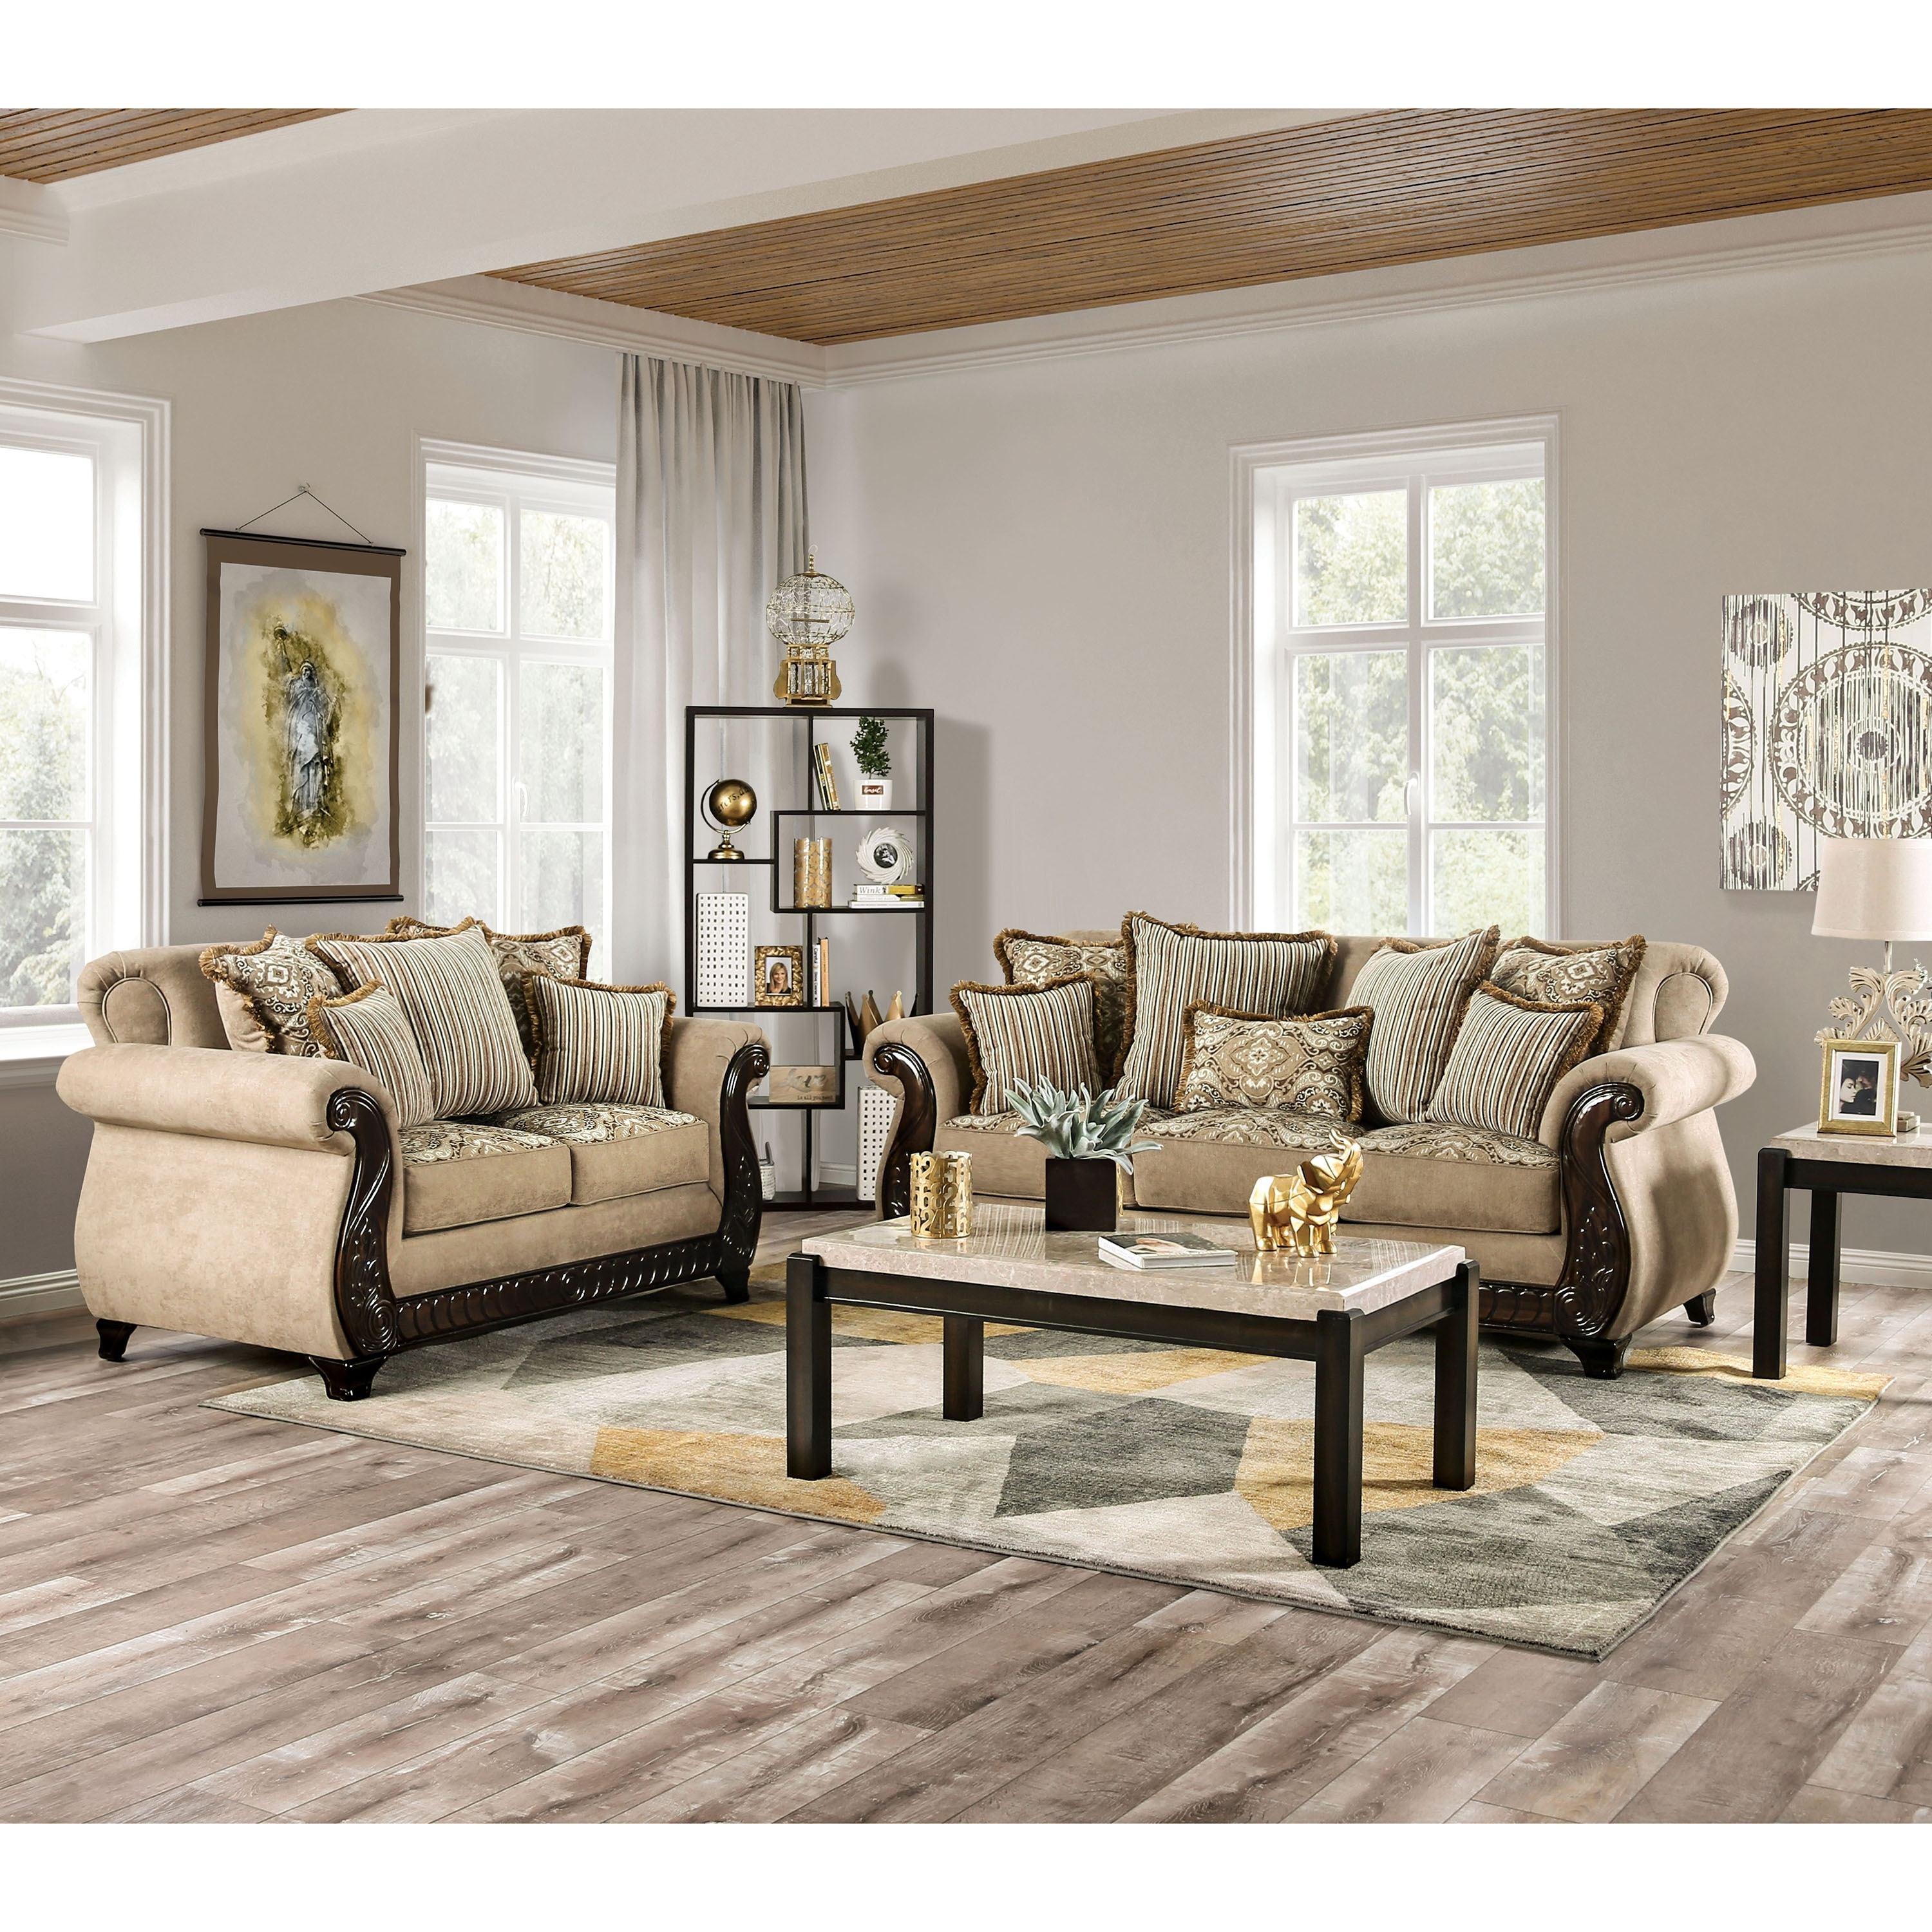 Furniture of America Nillie Traditional 5-piece Living Room Set